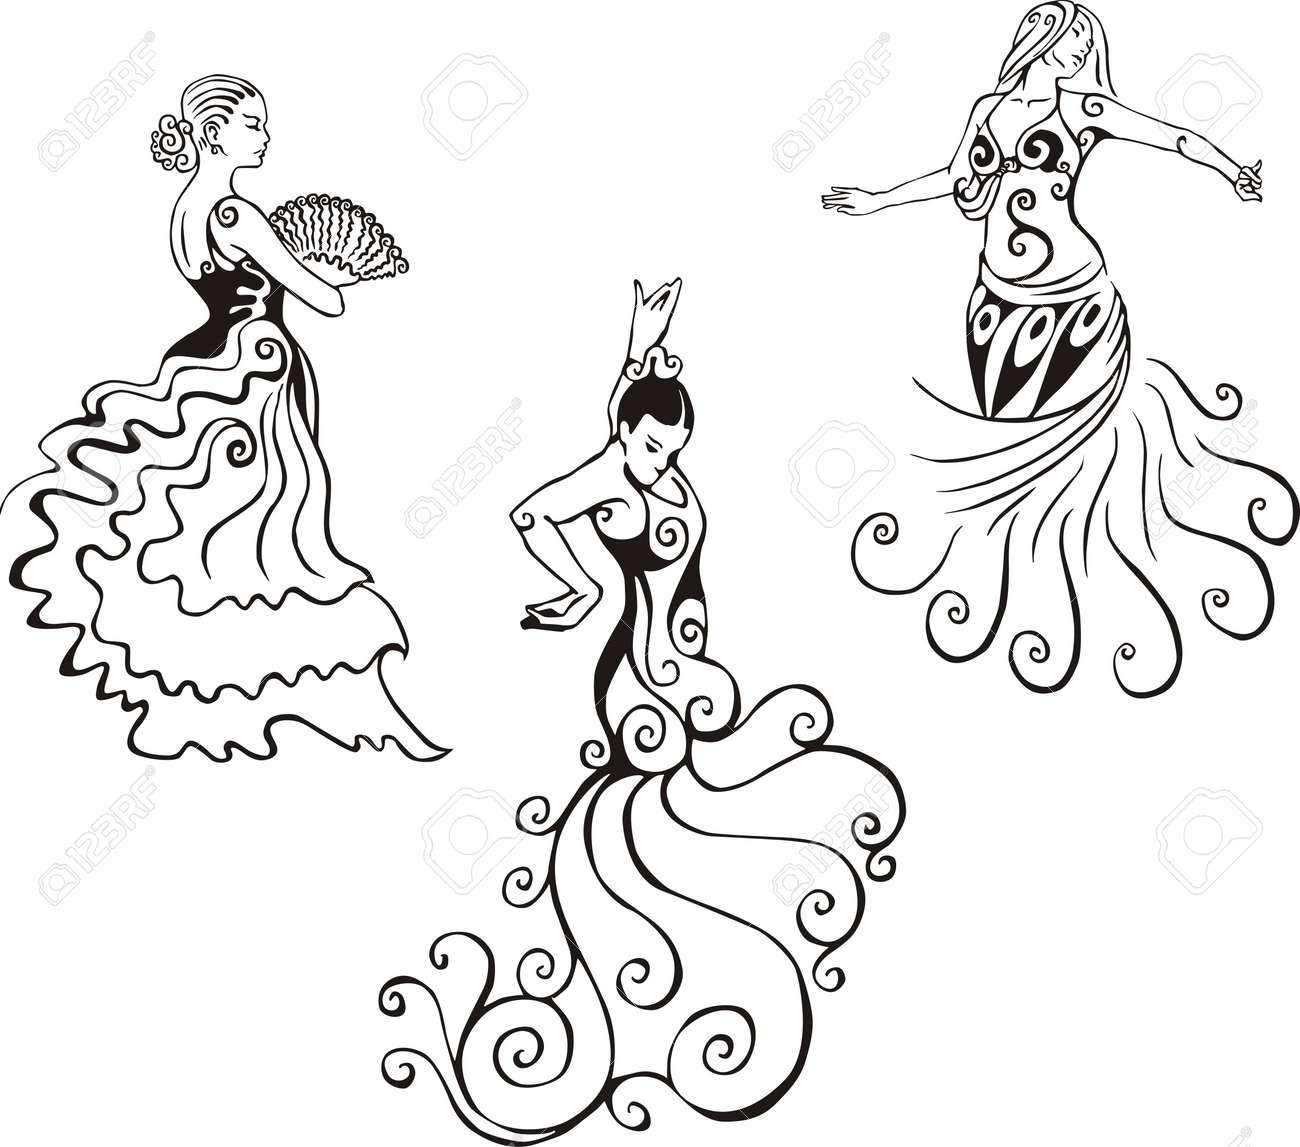 Women in hispanic dance. Set of black and white vector illustrations. Stock Vector - 13734775